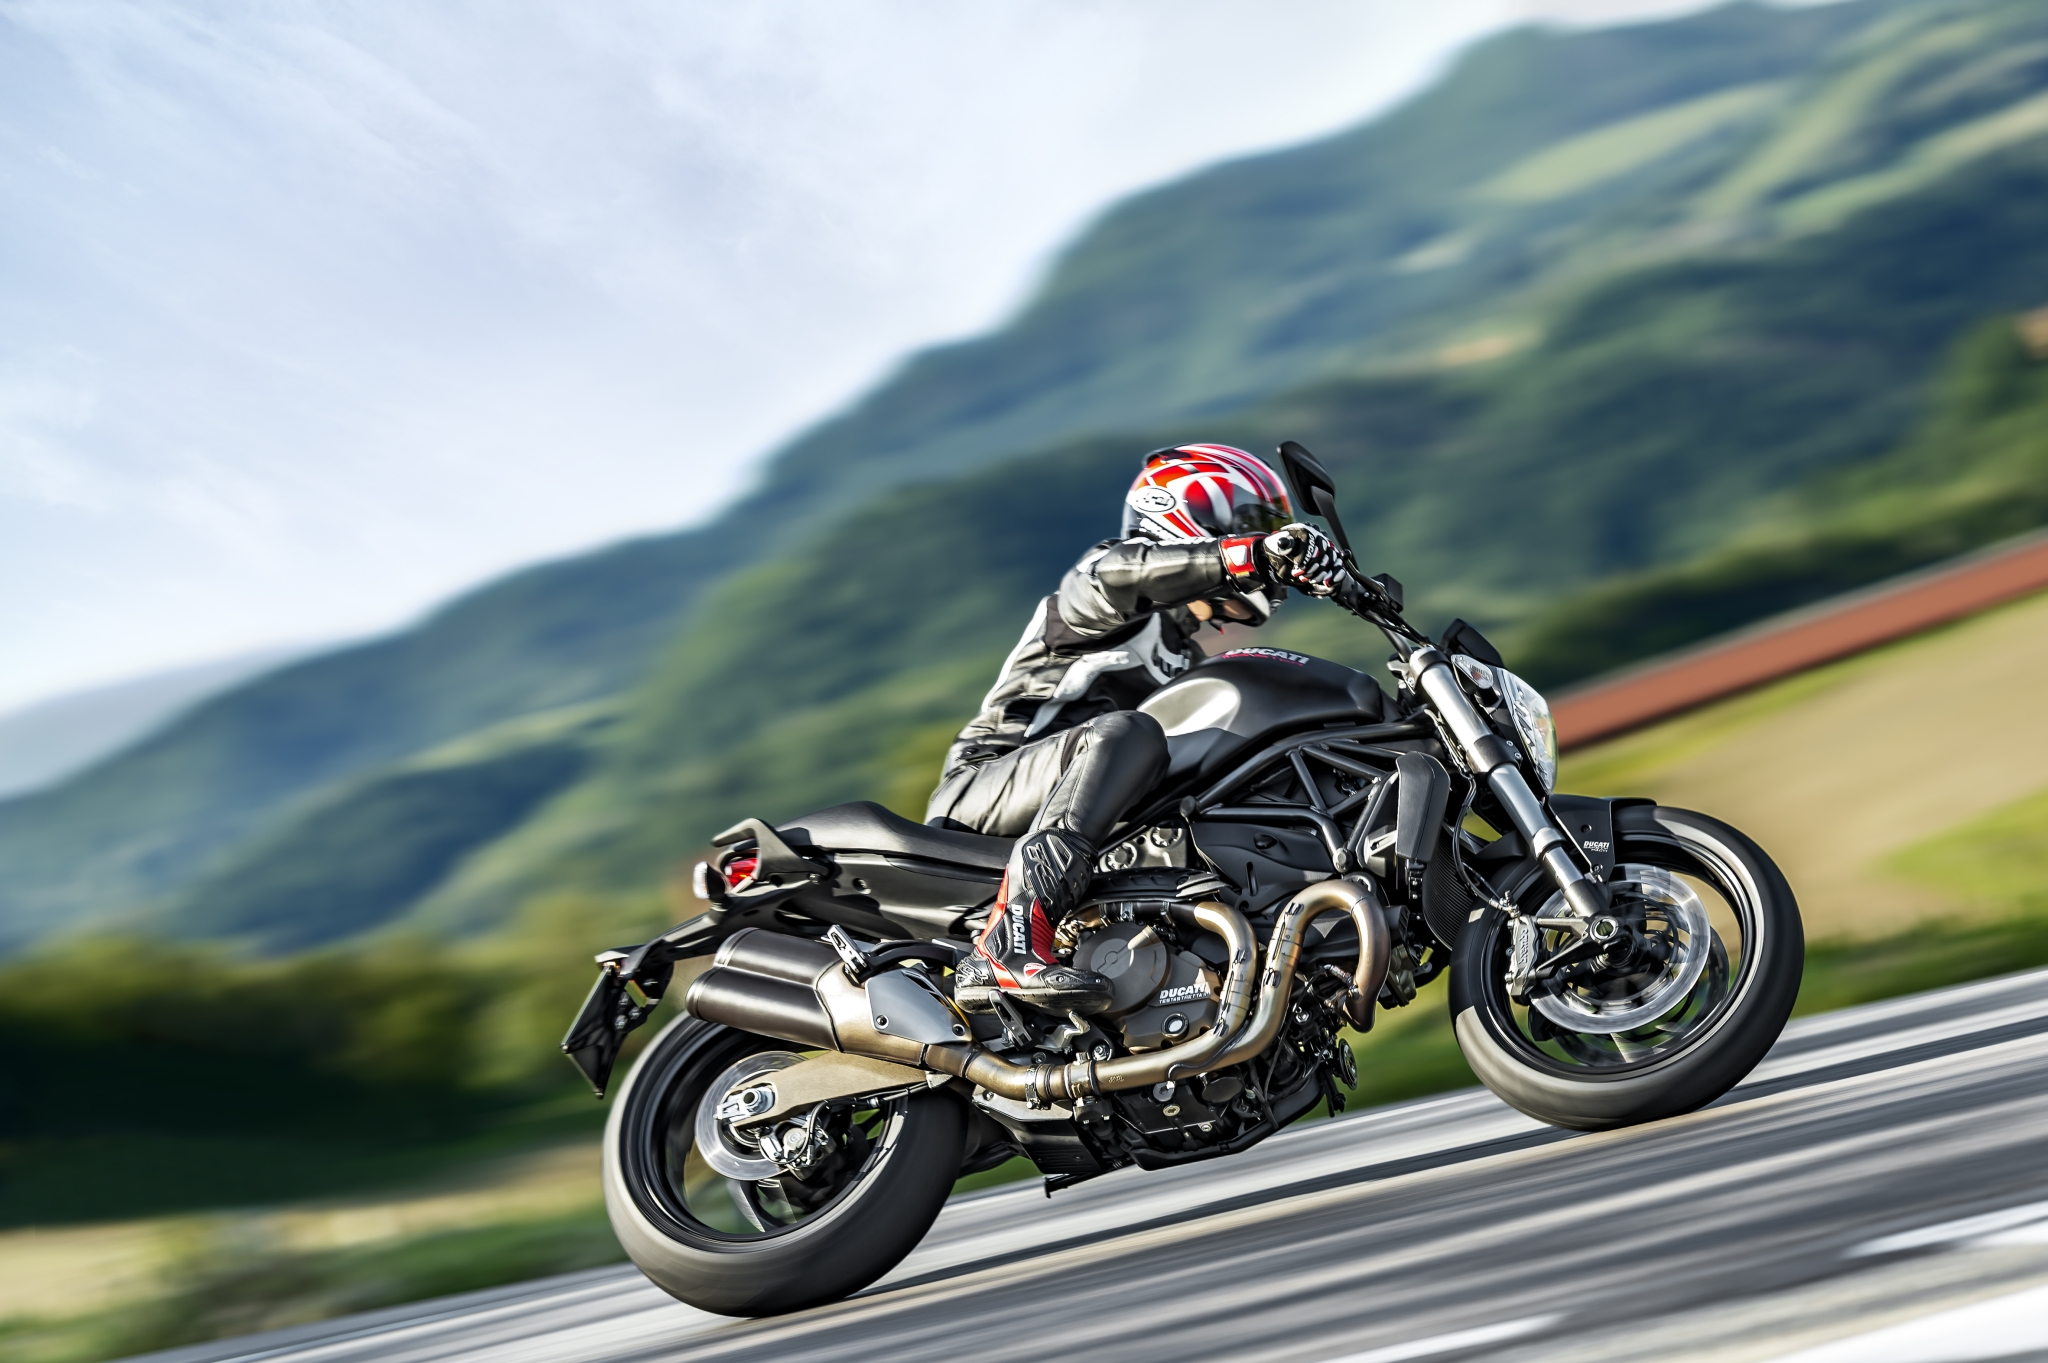 2015 Ducati Monster 821 Huge Pic Collection - autoevolution